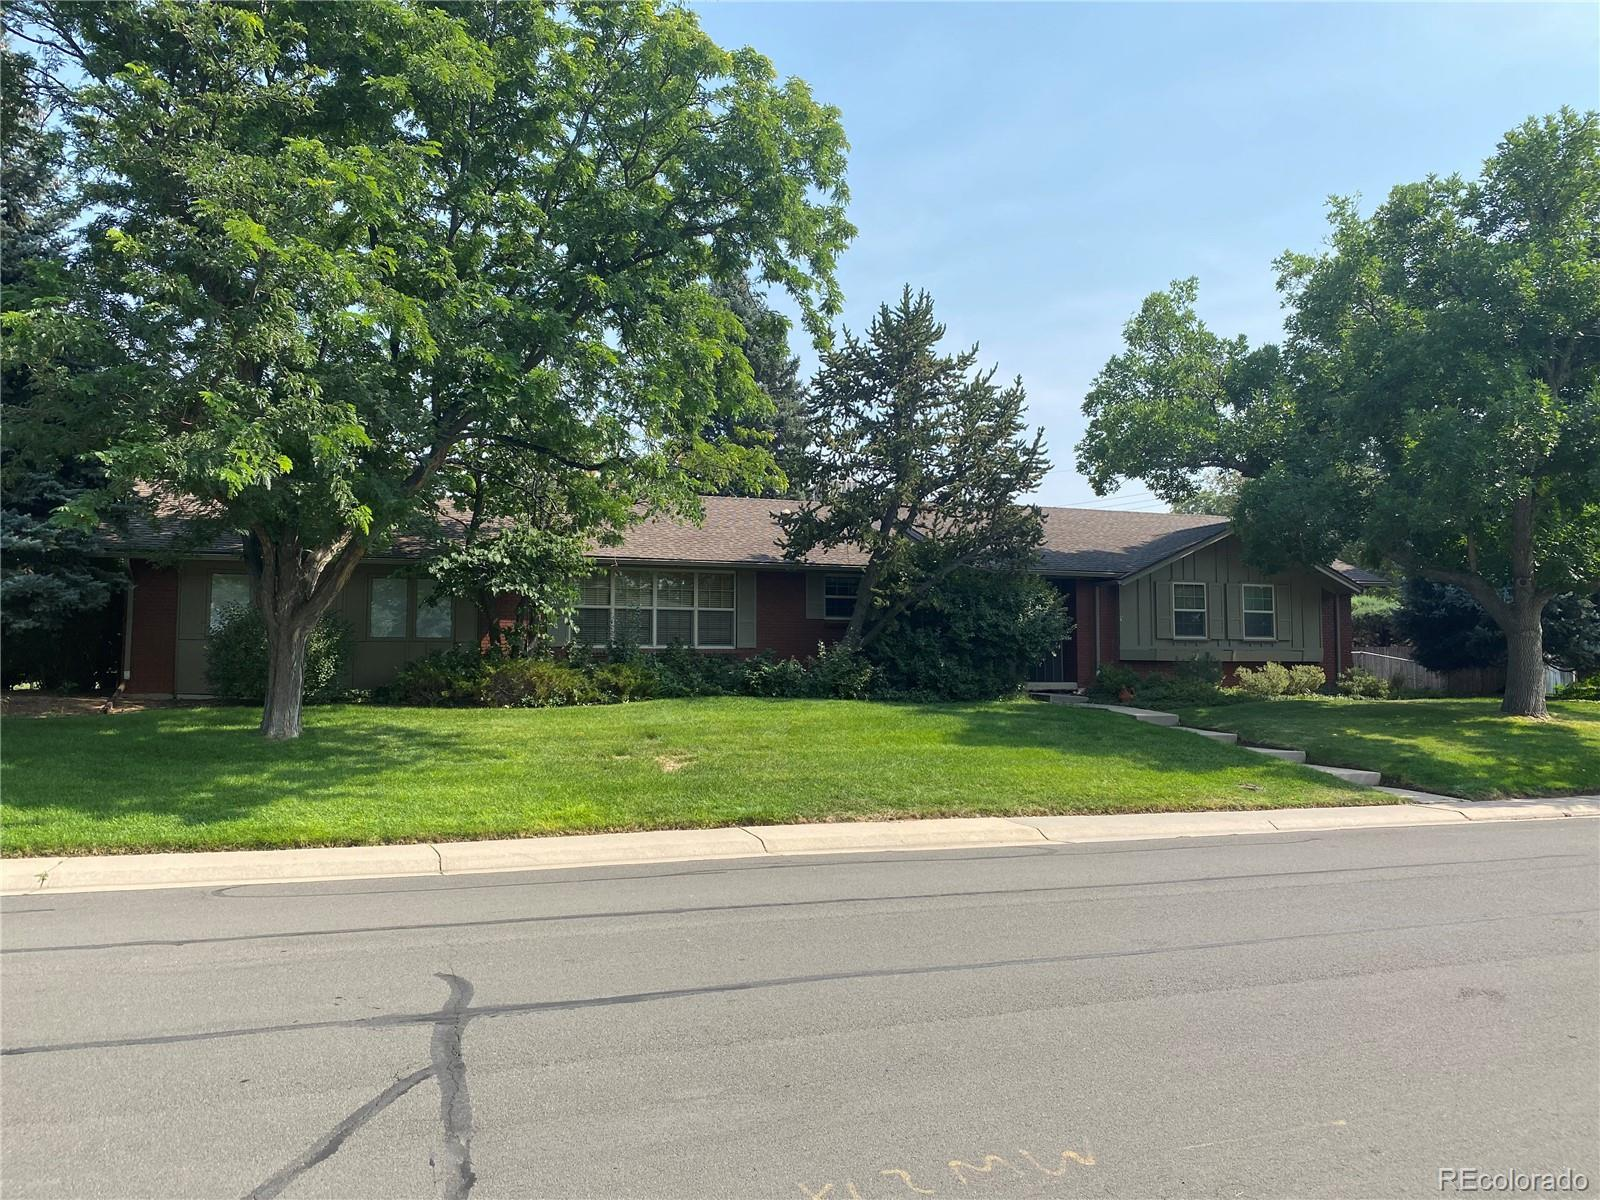 2380 S Holly Place, Denver, CO 80222 - #: 5215772